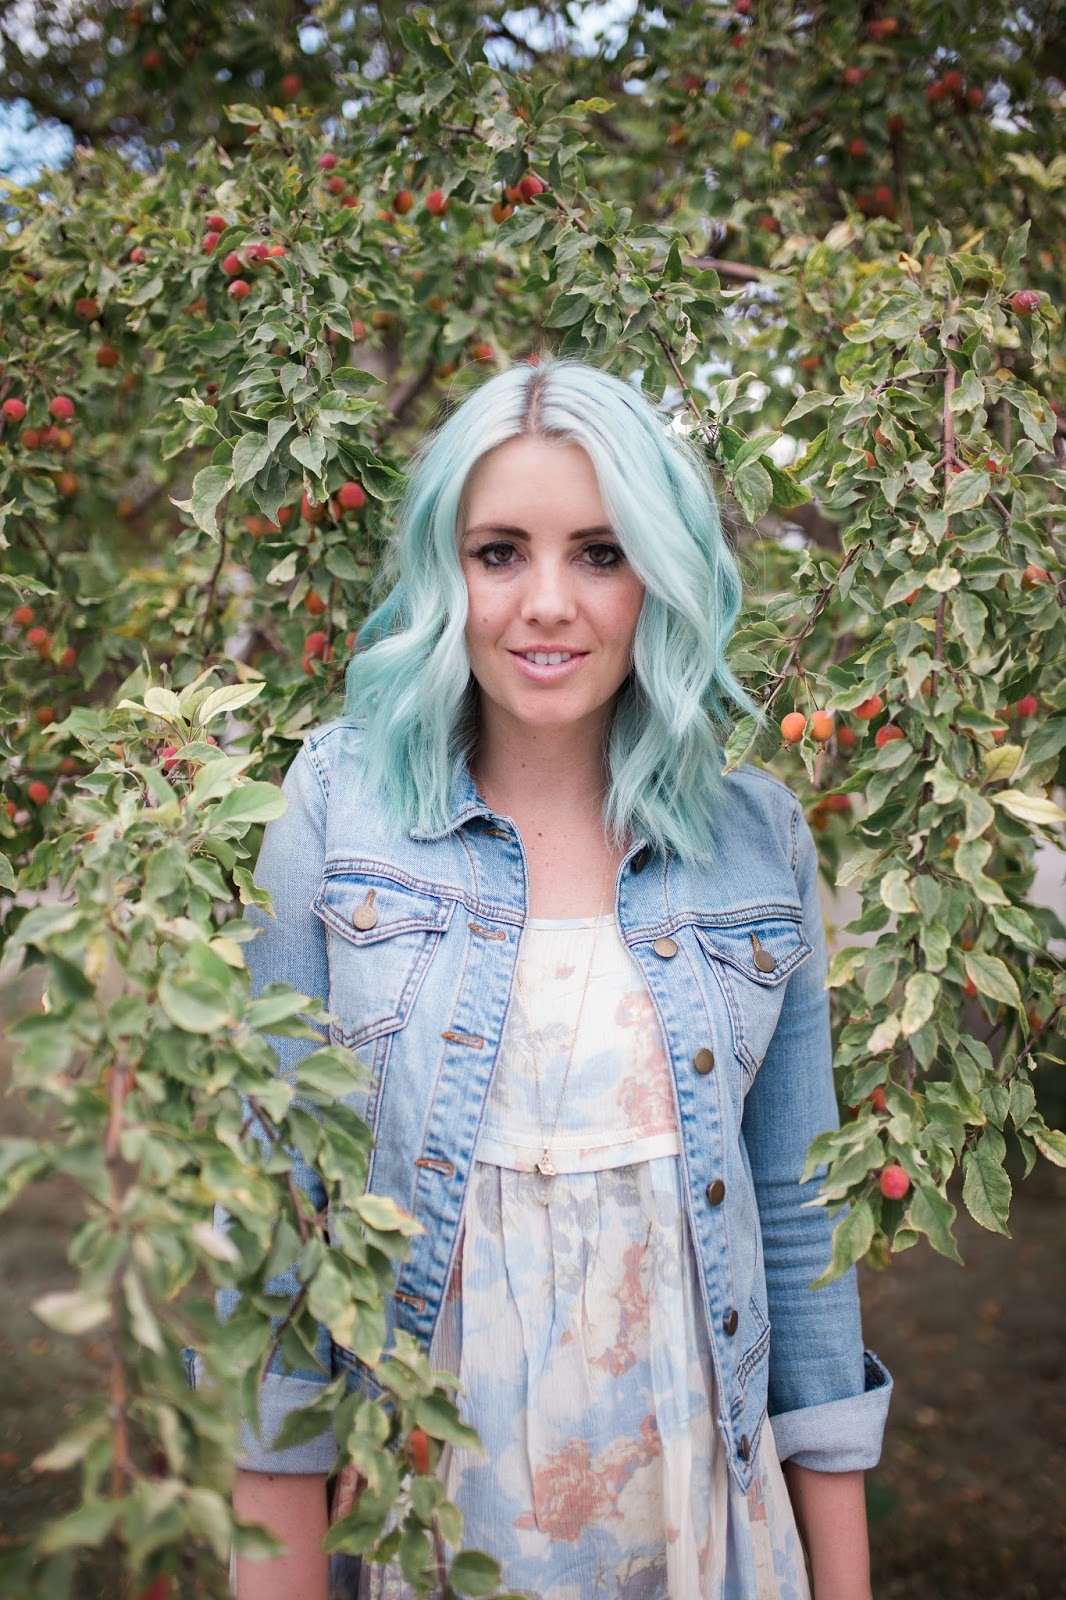 Blue Hair, Floral, Fashion Blogger